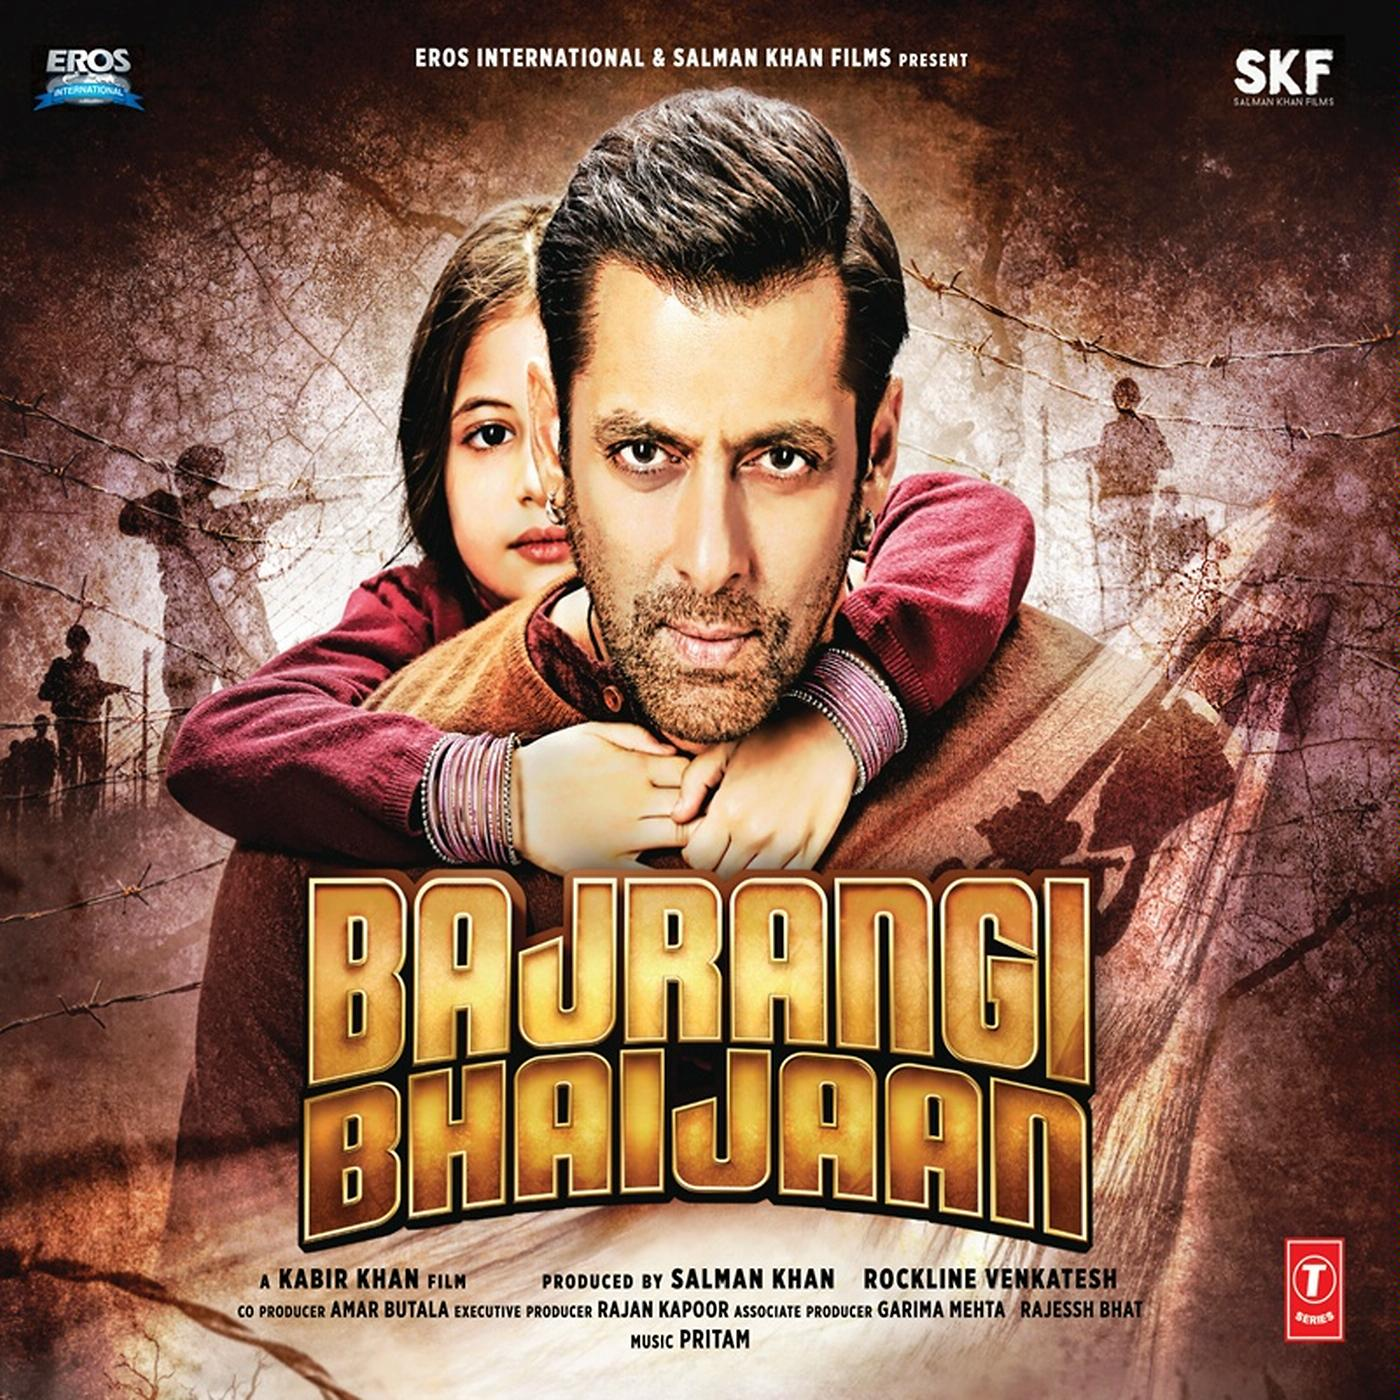 ... by kabir khan and produced by salman khan and rockline venkatesh it